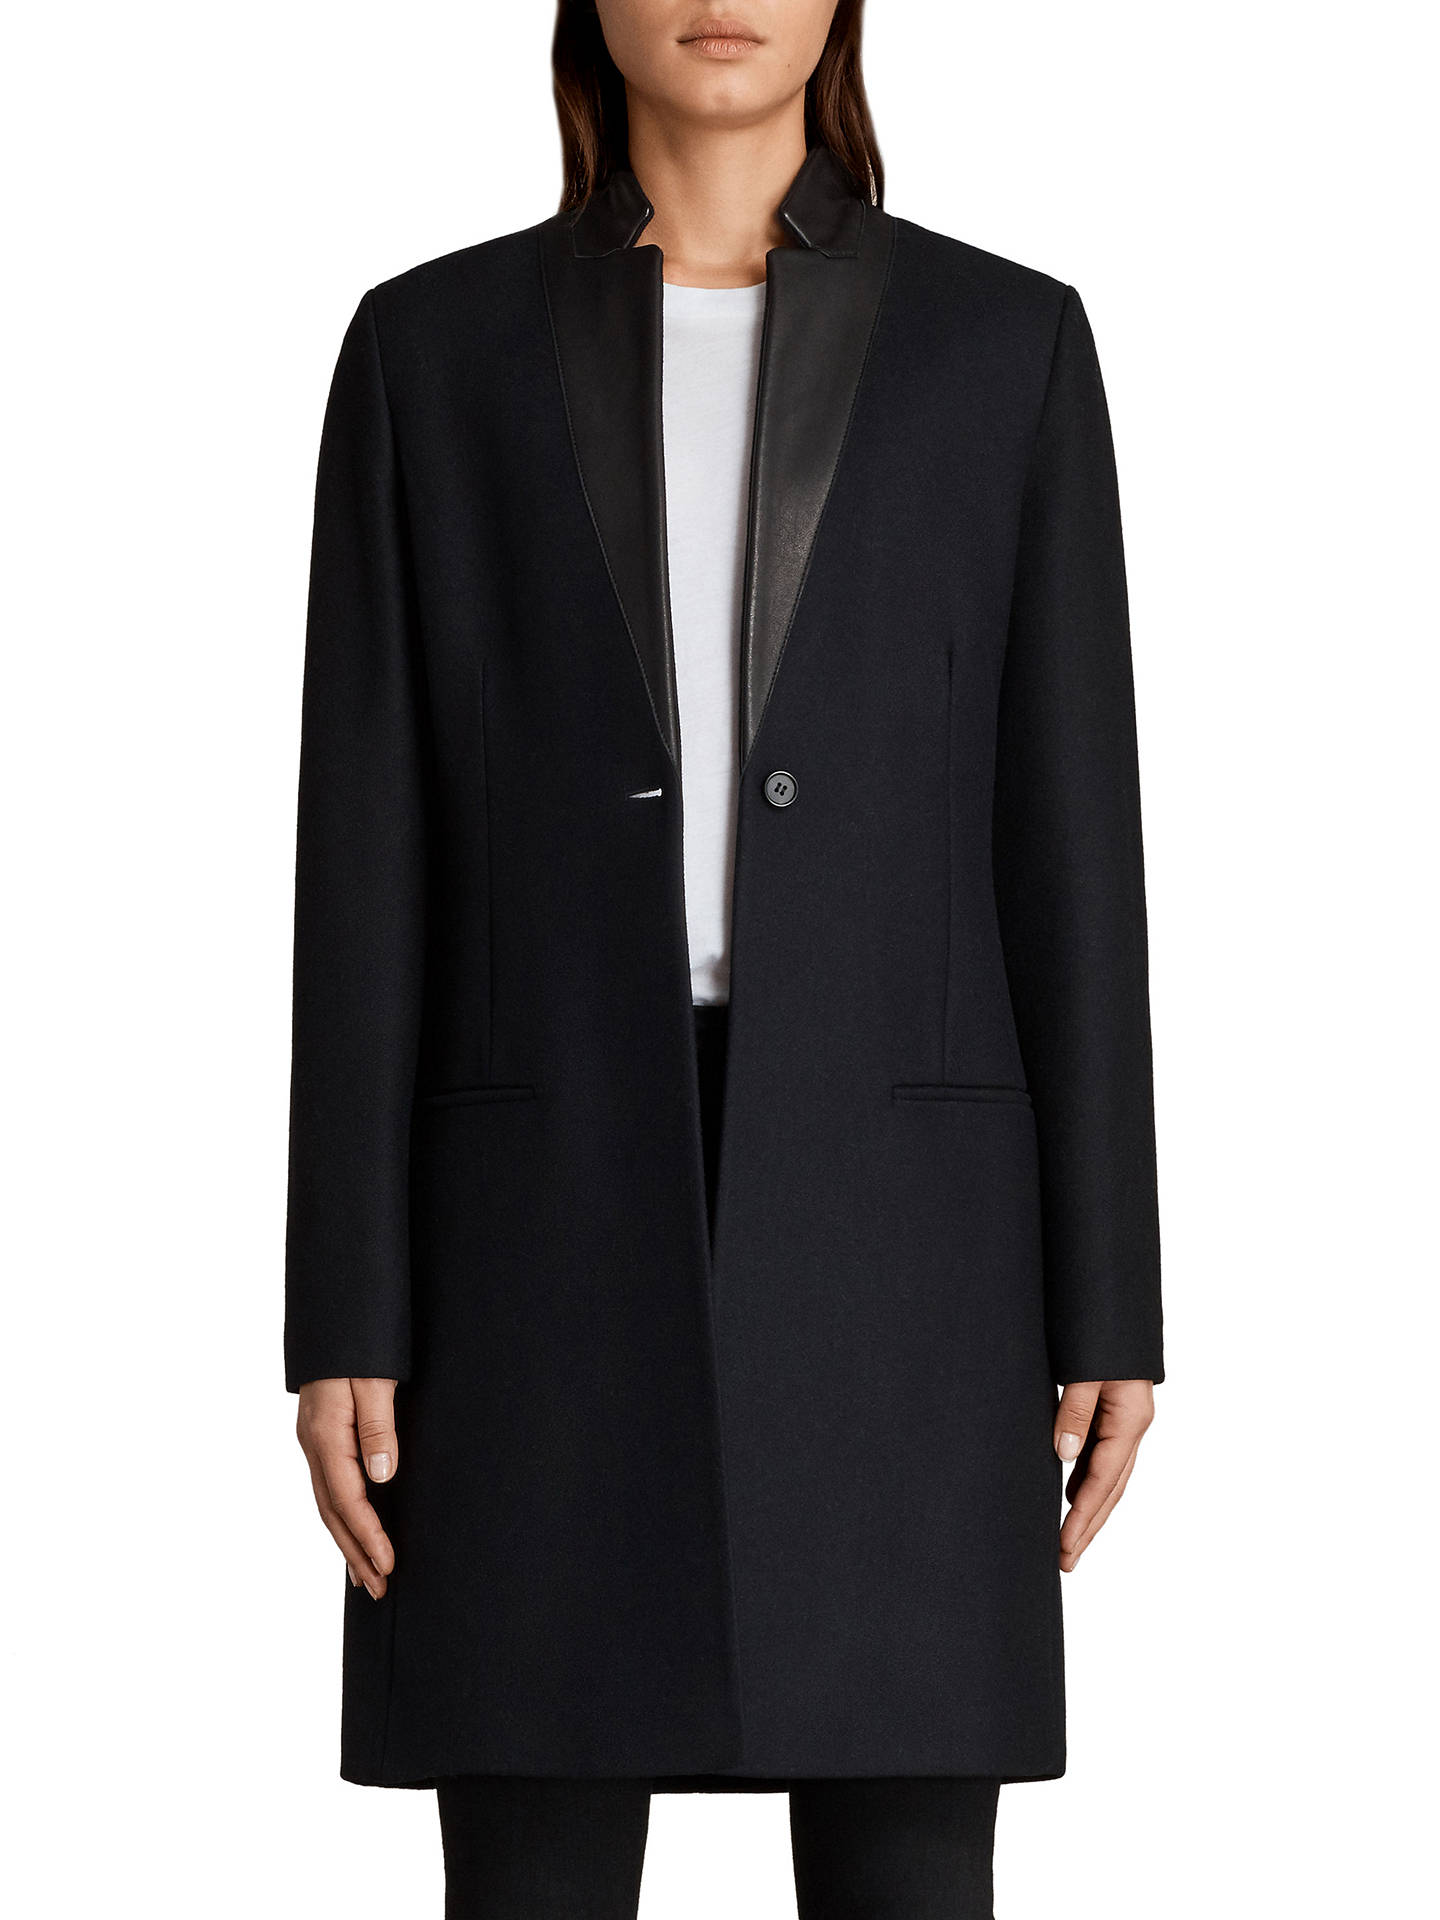 AllSaints Leni Long Sleeve Tailored Coat, Ink Blue at John